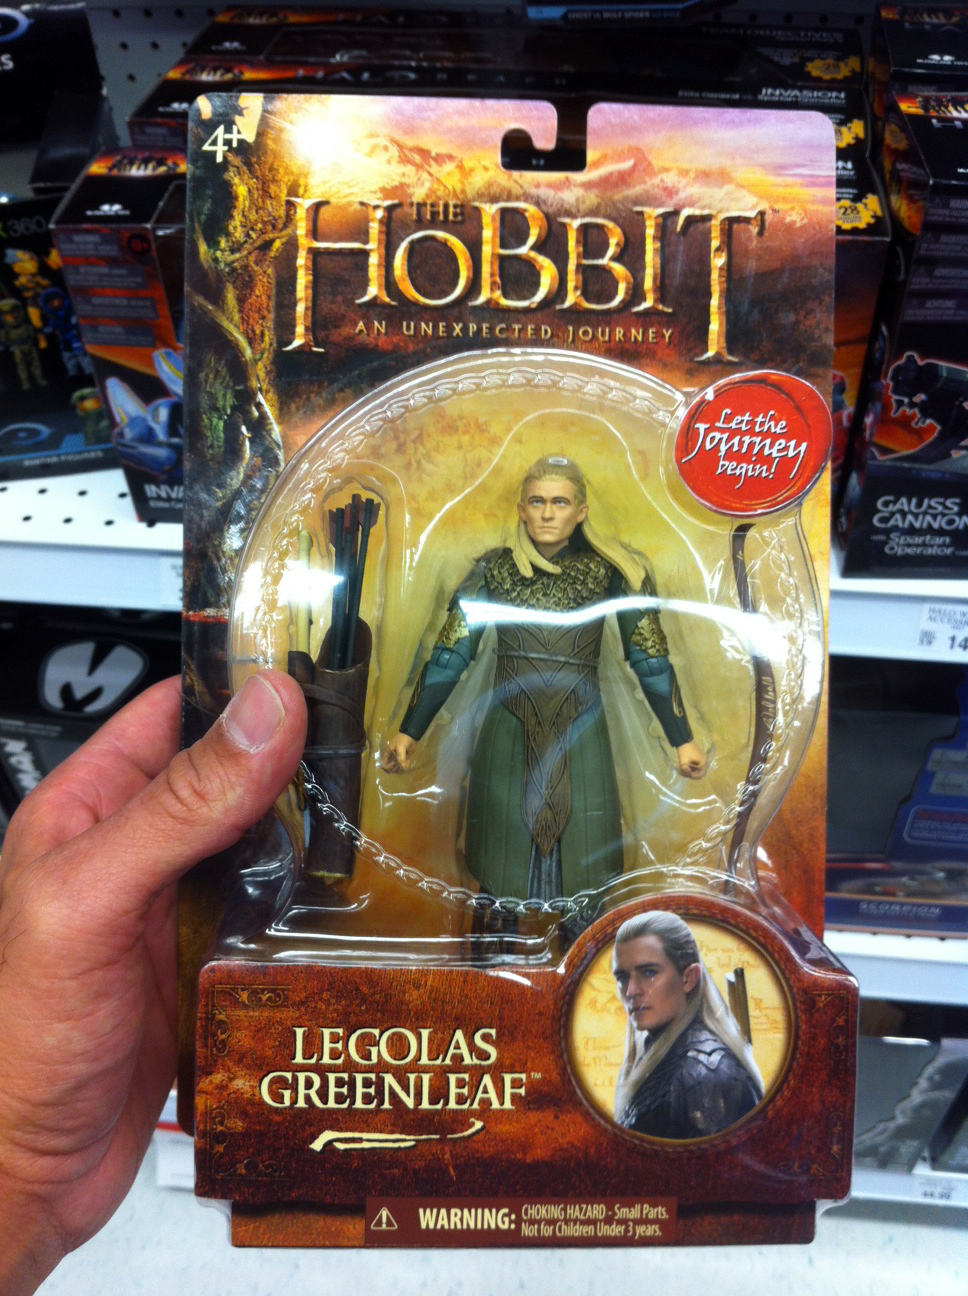 Toy Story Toys In Movie Hobbit Toys Hit Store Shelves Tauriel Revealed Hobbit